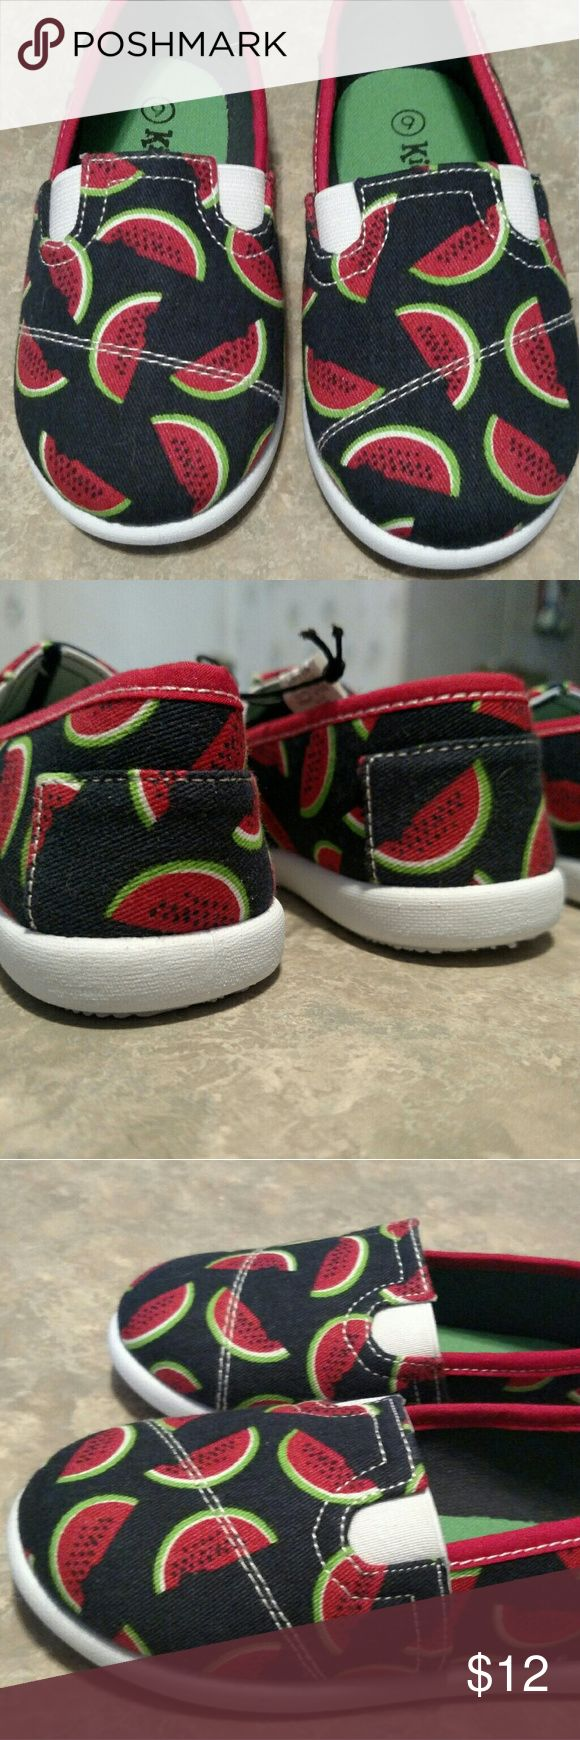 Toddler baby girls slip on Toms style shoes sz 9 c BRAND NEW  Slip on with watermelon print  and black background Similiar to Tom's or Bob's  Size 9 c  Great for summer spring casual Tom's  Shoes Sneakers